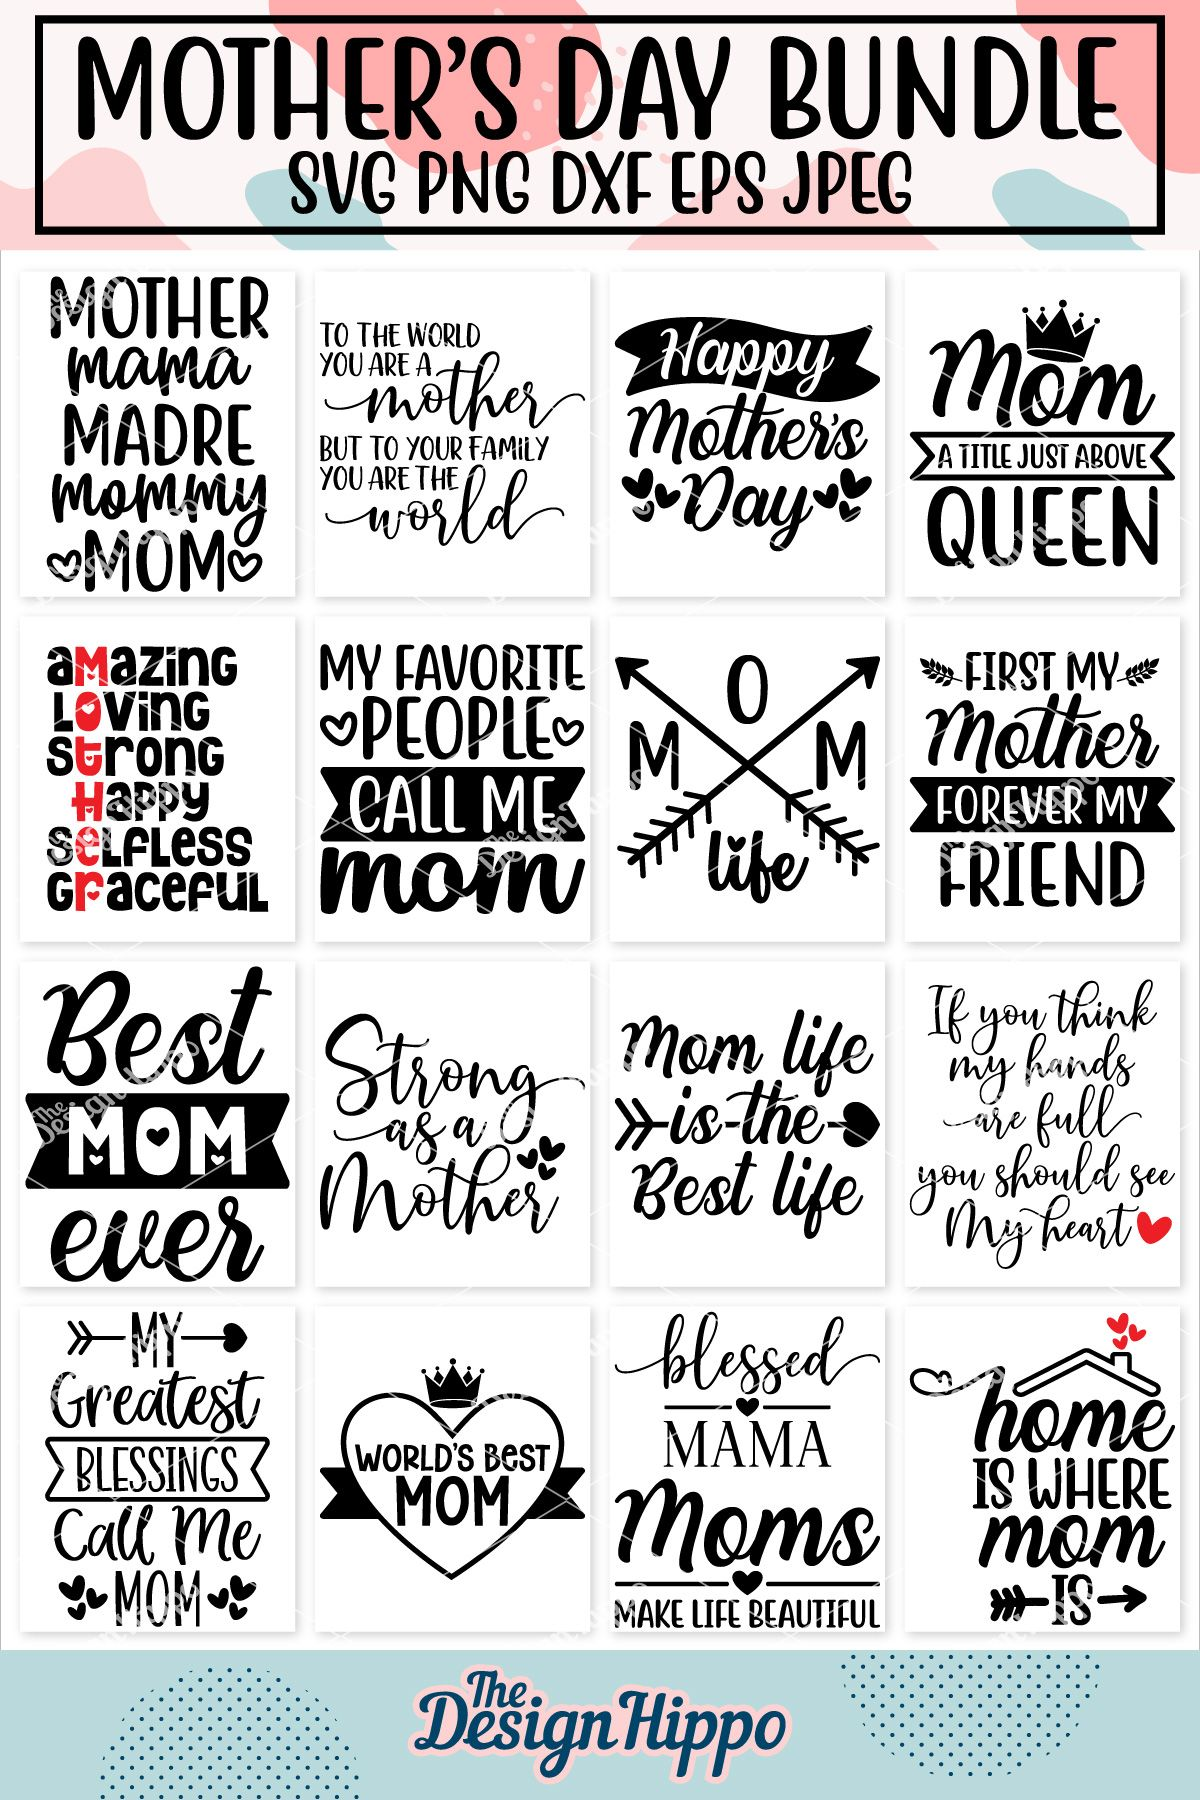 Free Mothers day simple hand drawn svg flower art word. Pin On Svg Design Files On Etsy SVG, PNG, EPS, DXF File